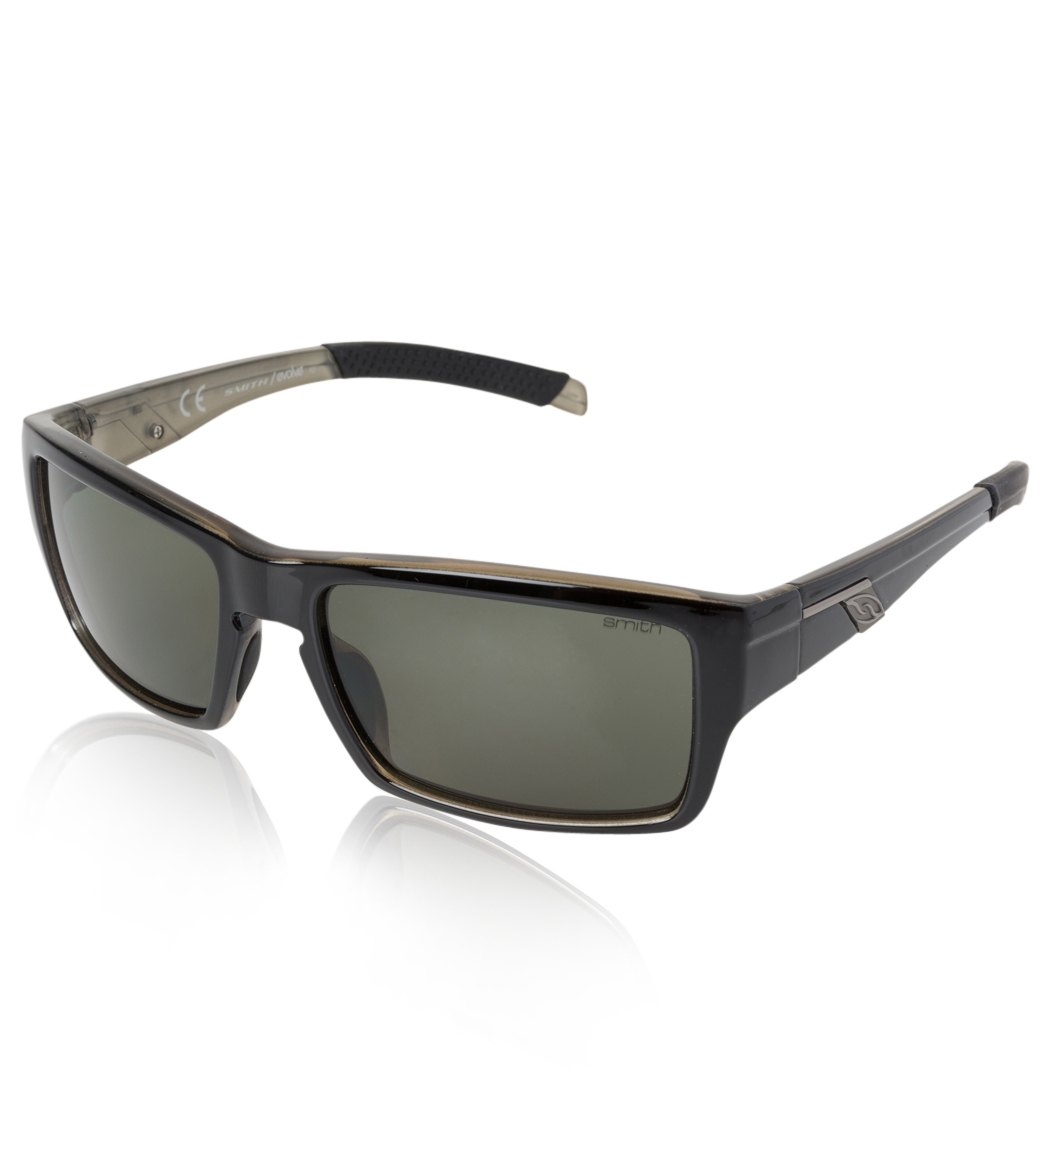 3866f174c847 Smith Optics Men s Outlier Sunglasses at SwimOutlet.com - Free Shipping